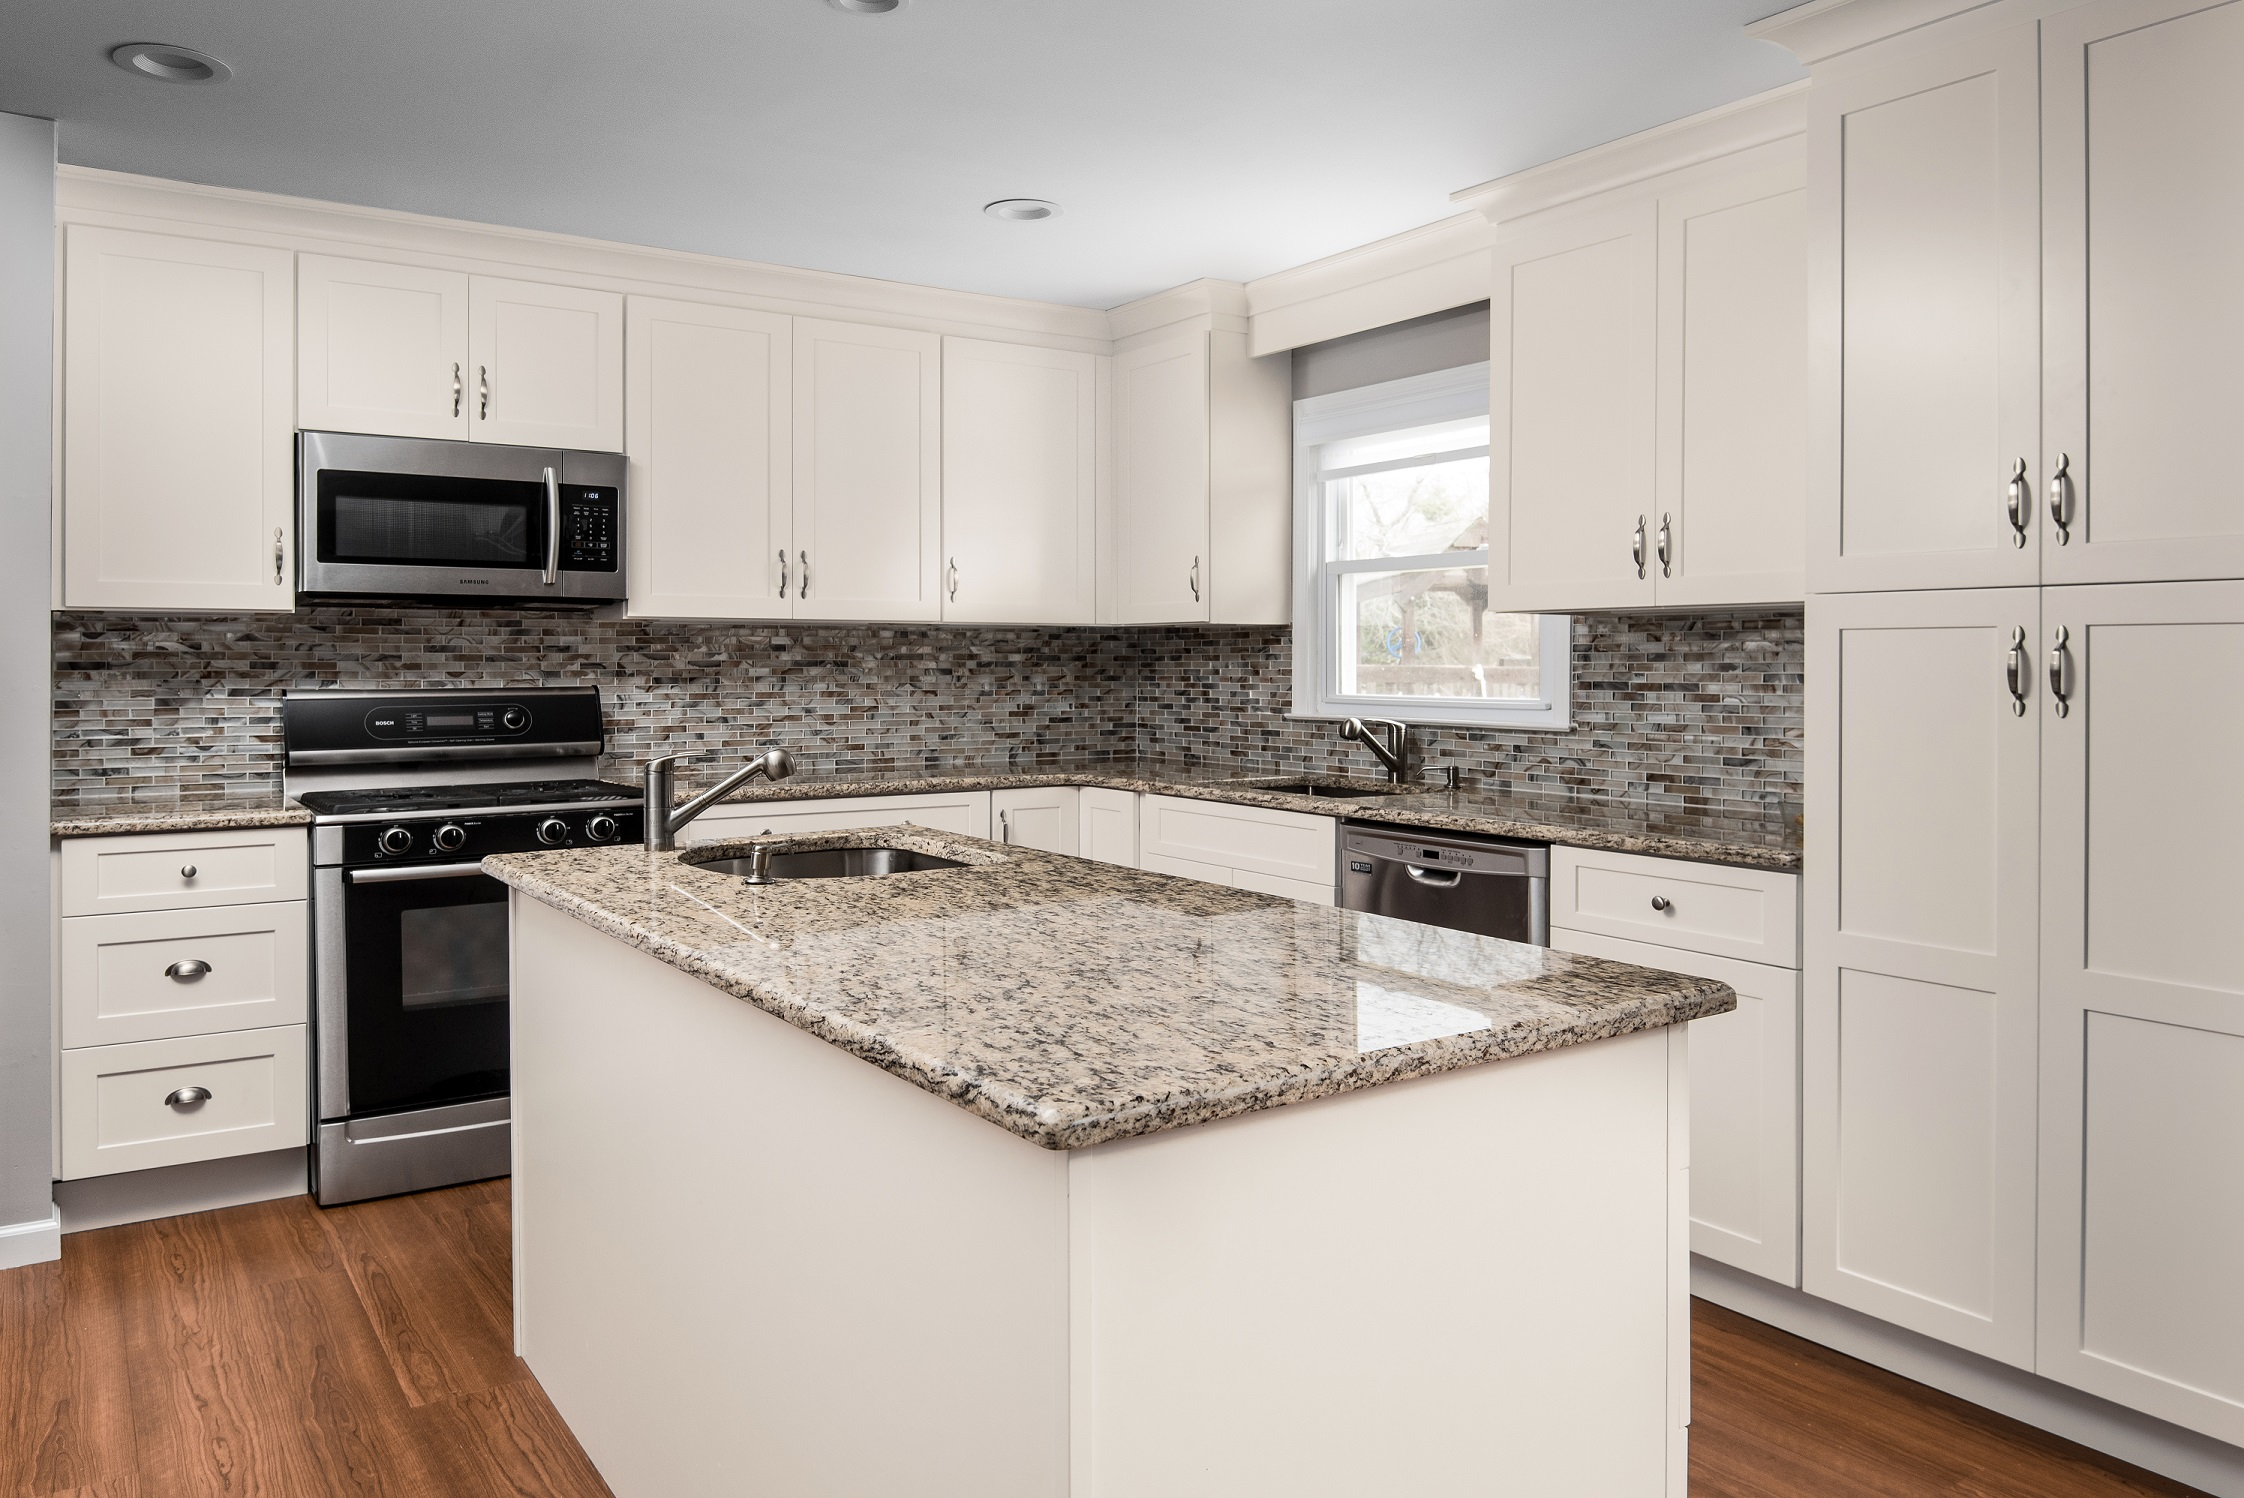 Midtown%252520Cream%252520Shaker%252520Kitchen%252520Cabinets